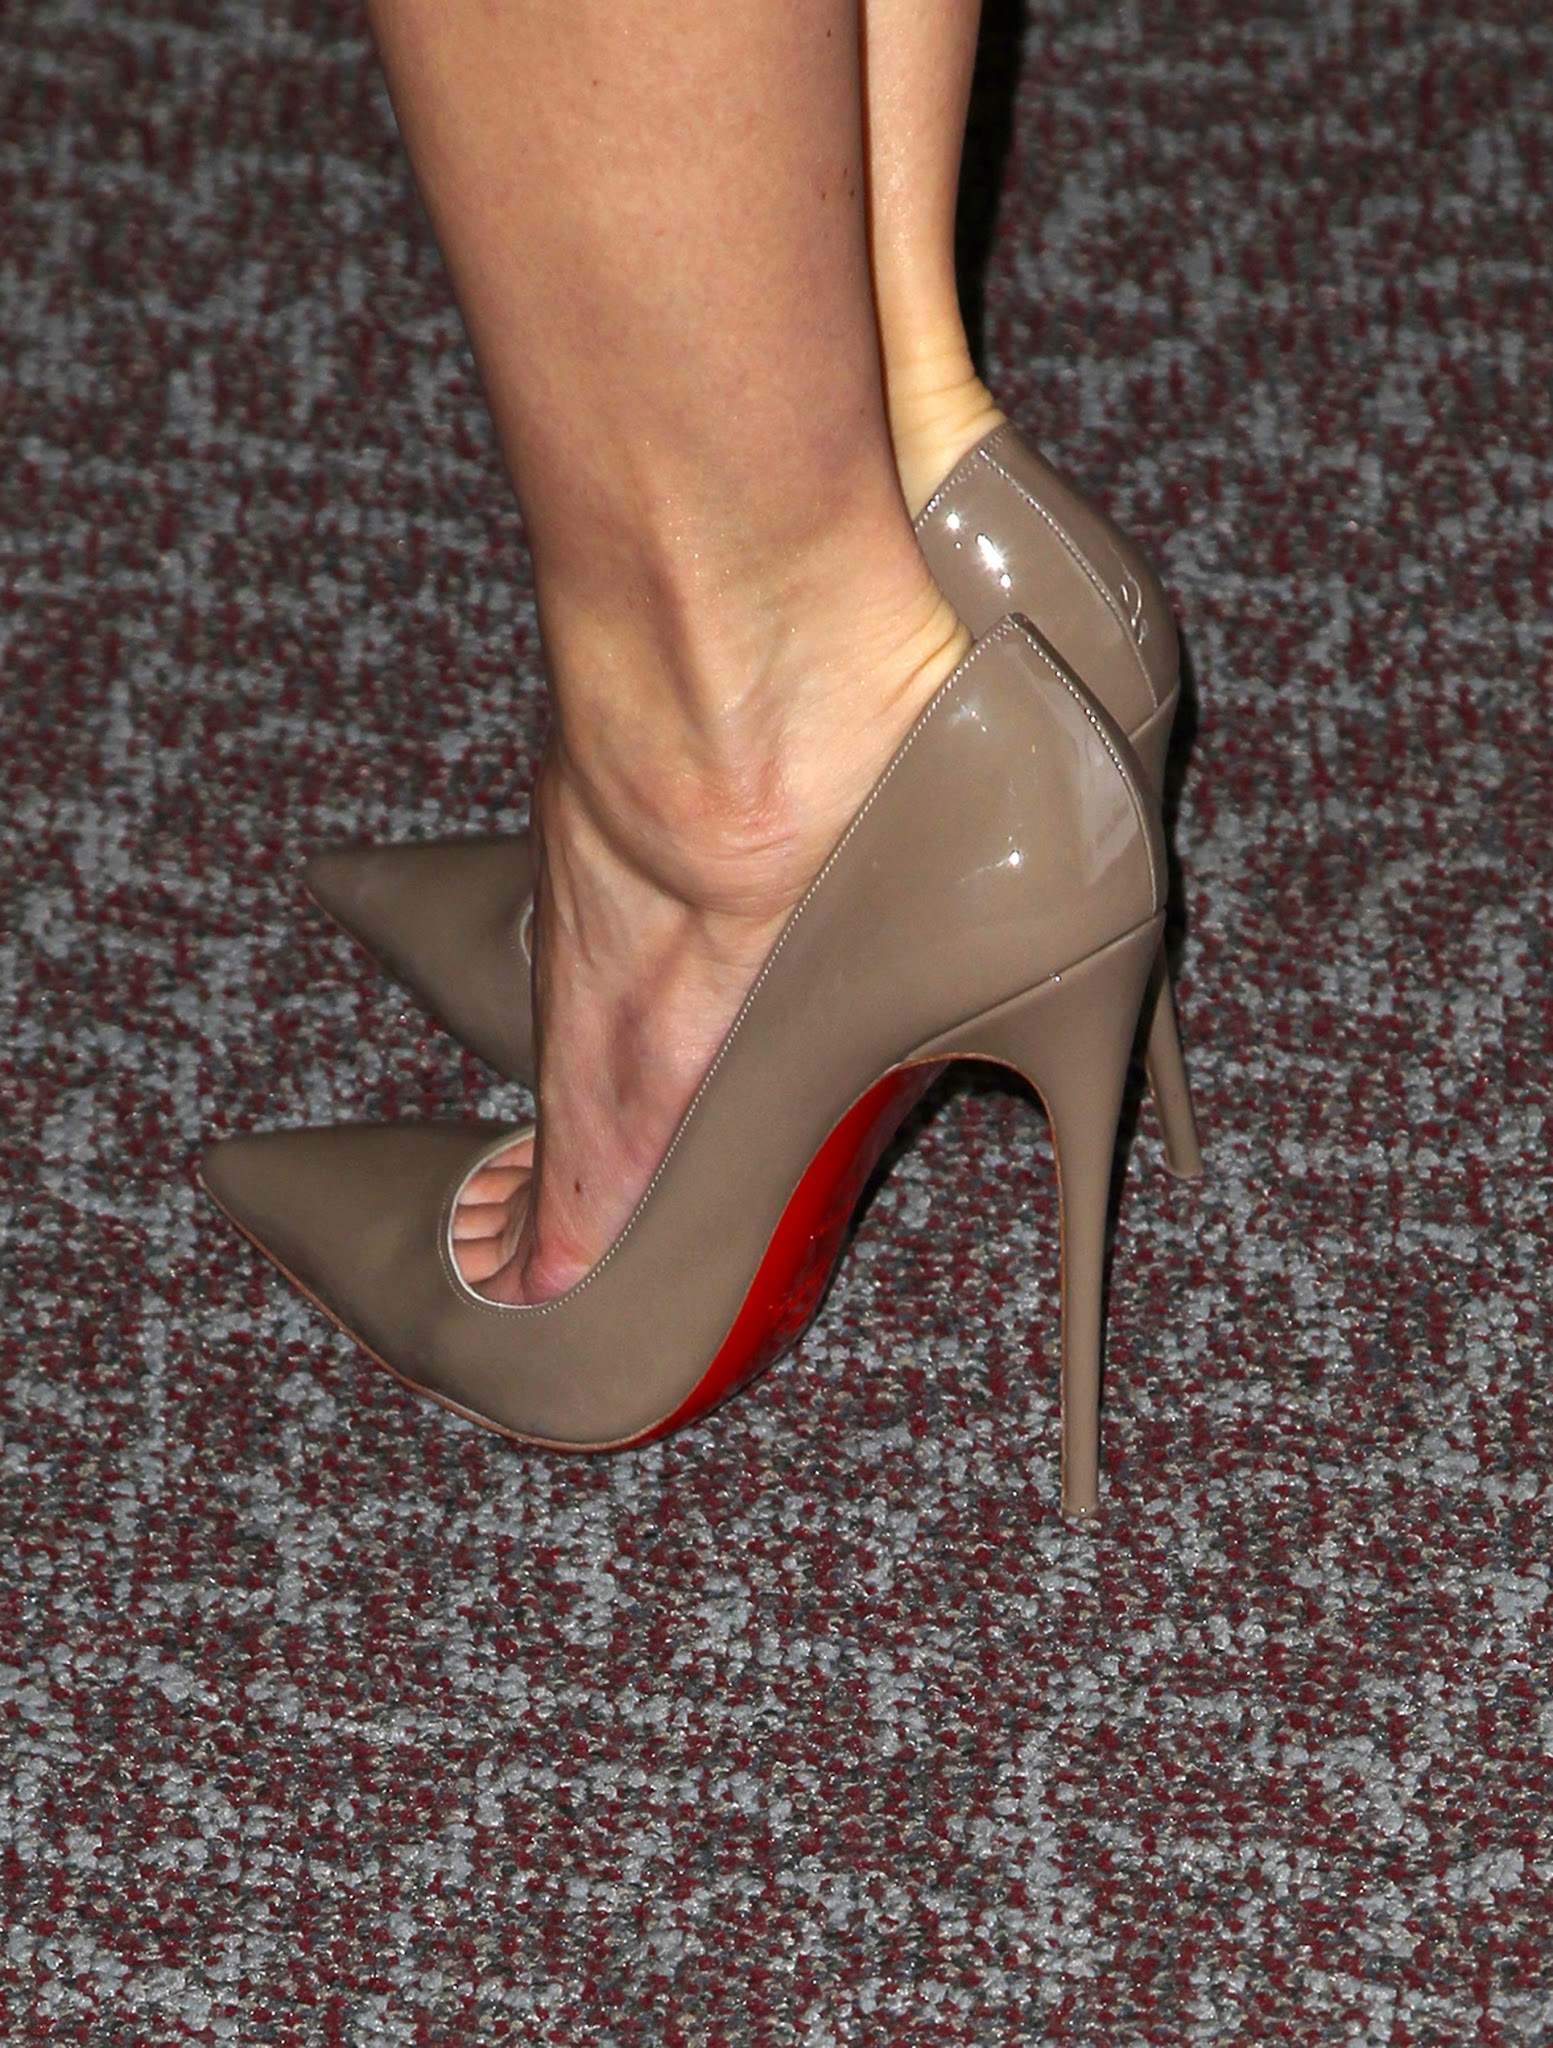 6 inch heels dangling full hd preview of my website - 3 part 8